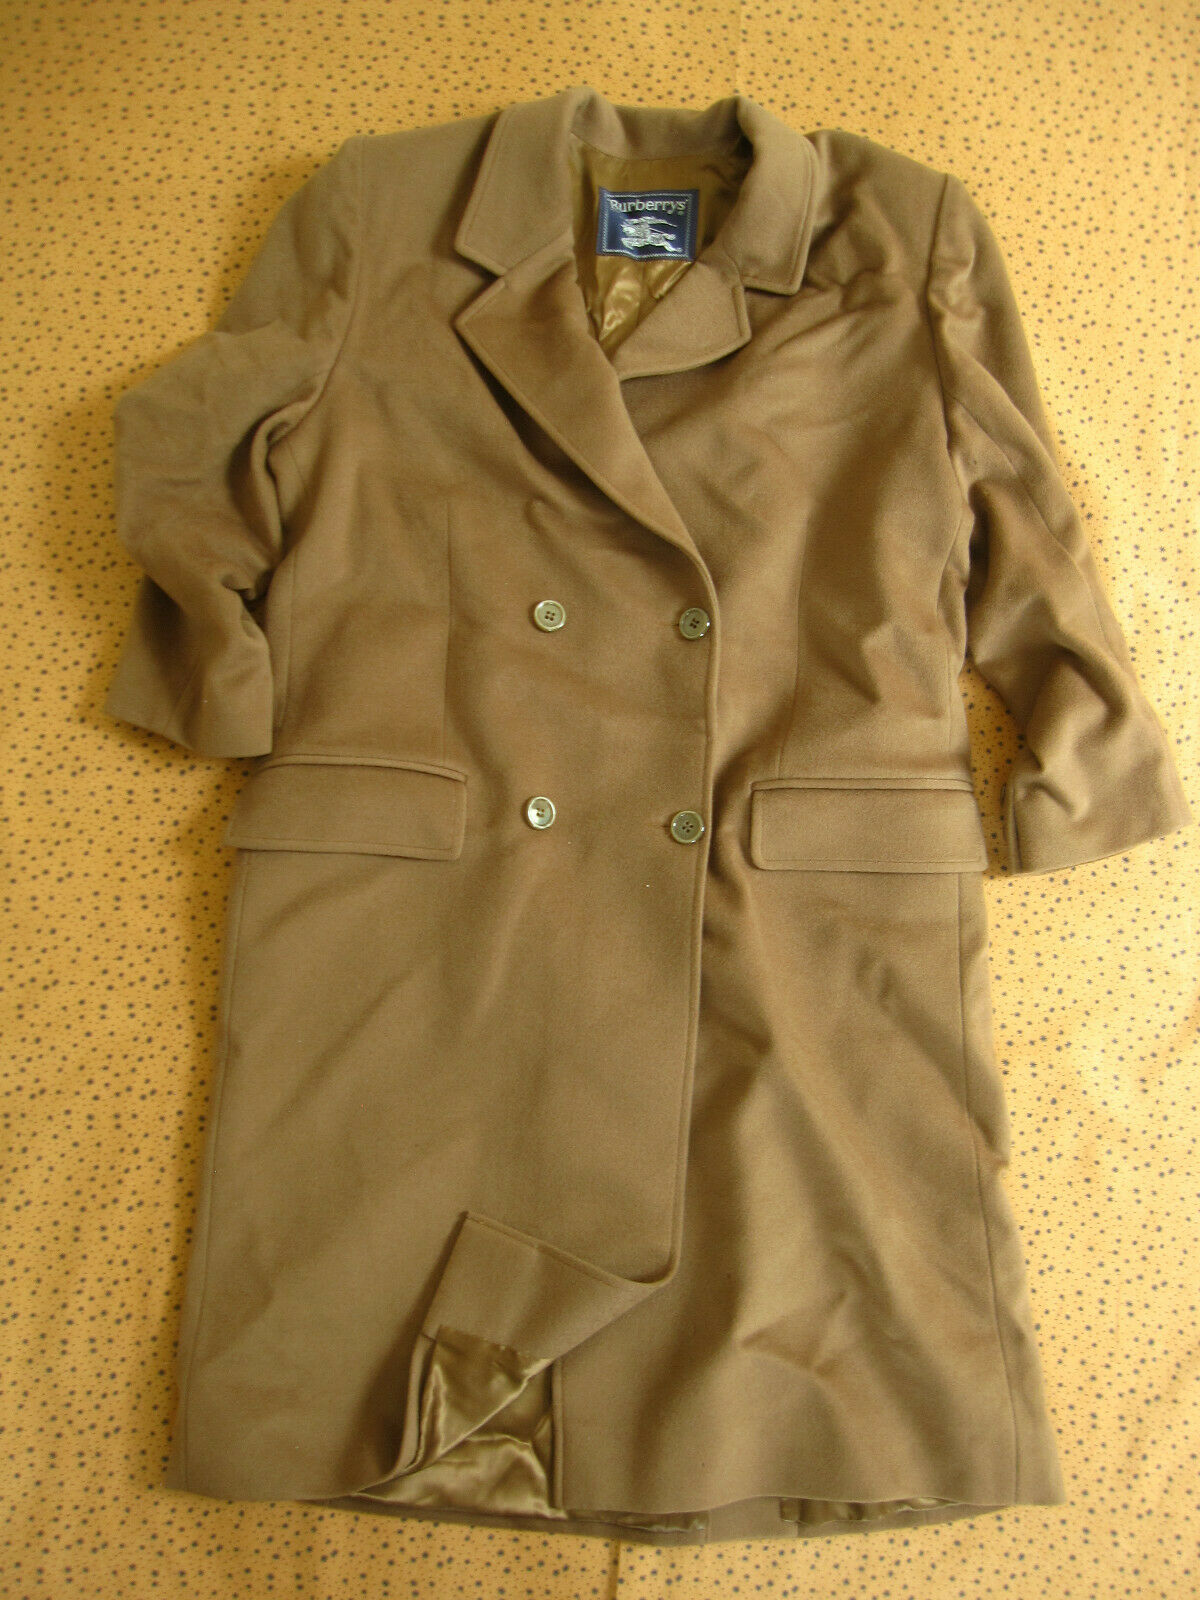 Burberrys trench coat made in england manteau marron vintage femme - 42